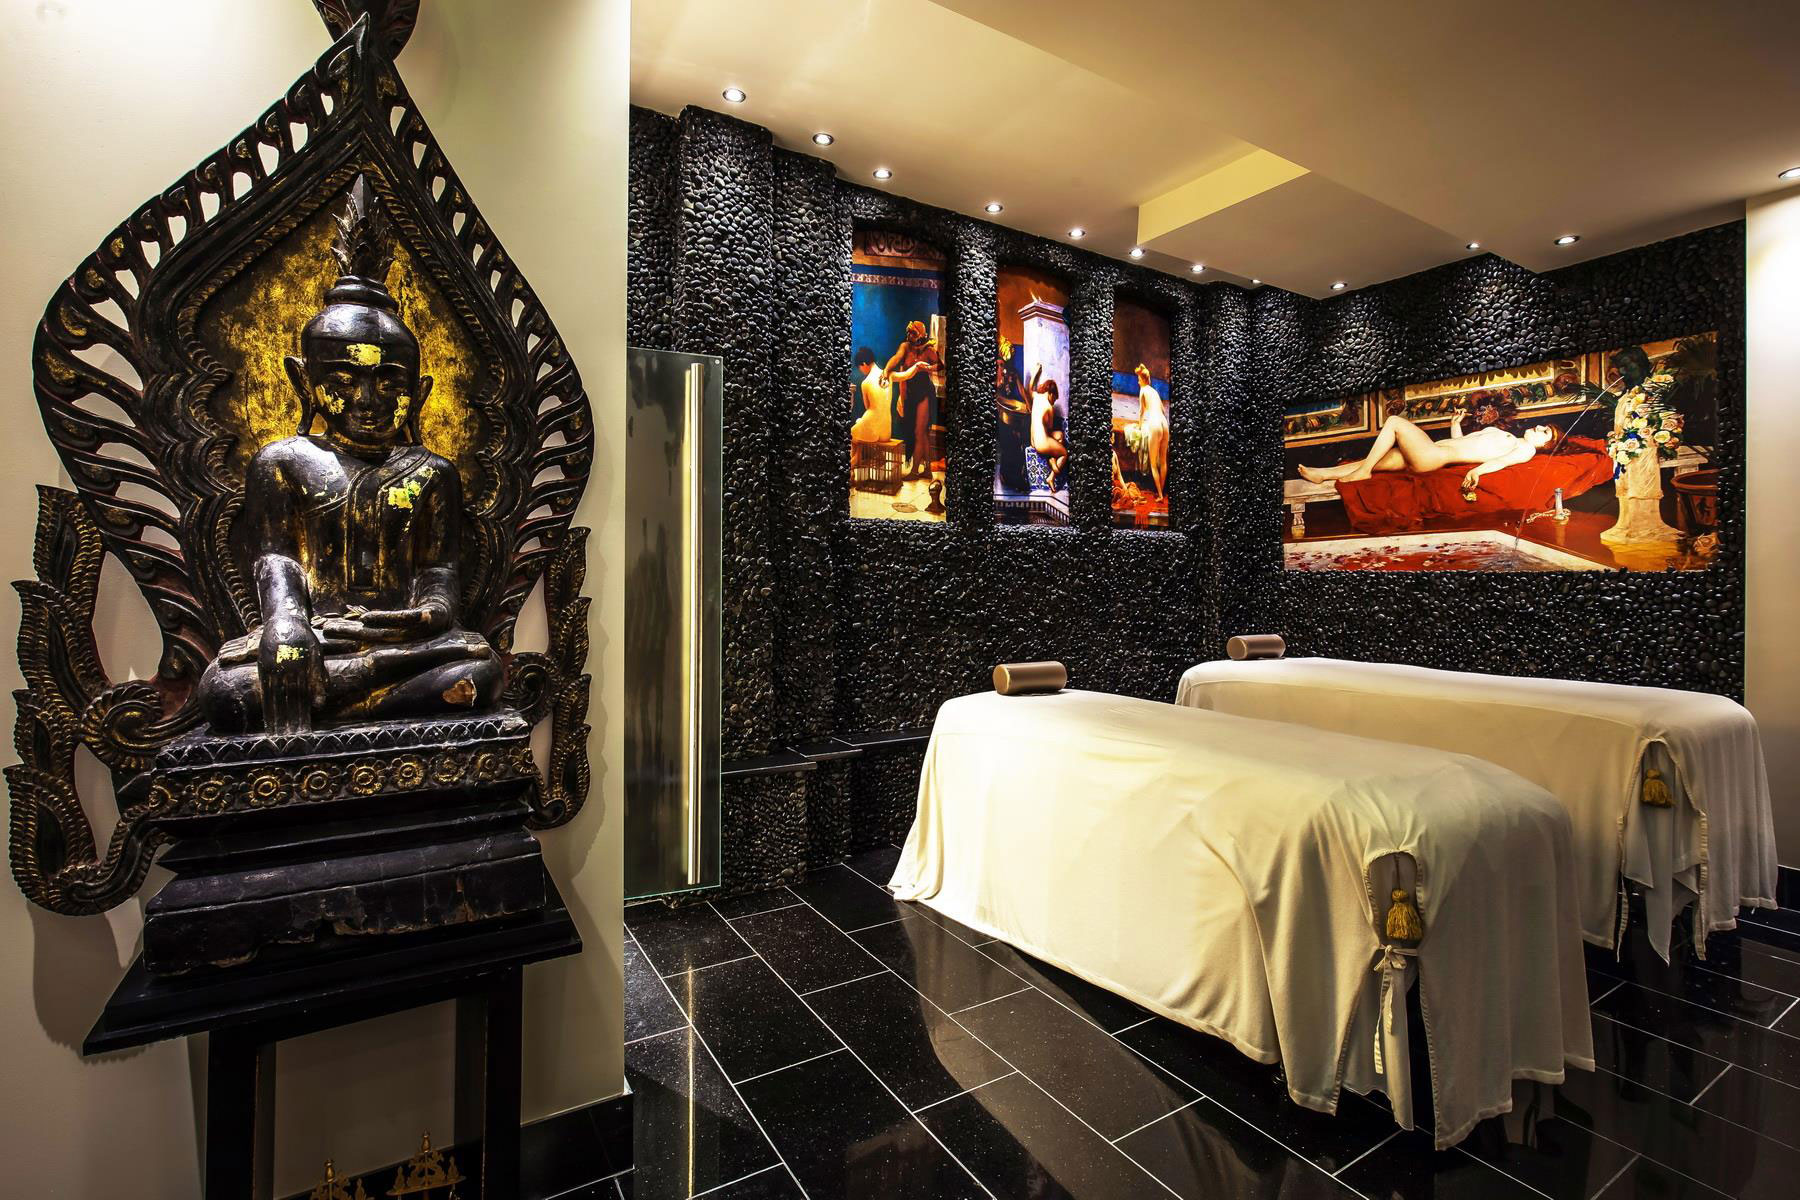 Visit Thai Square Spa in their new home on Northumberland Avenue